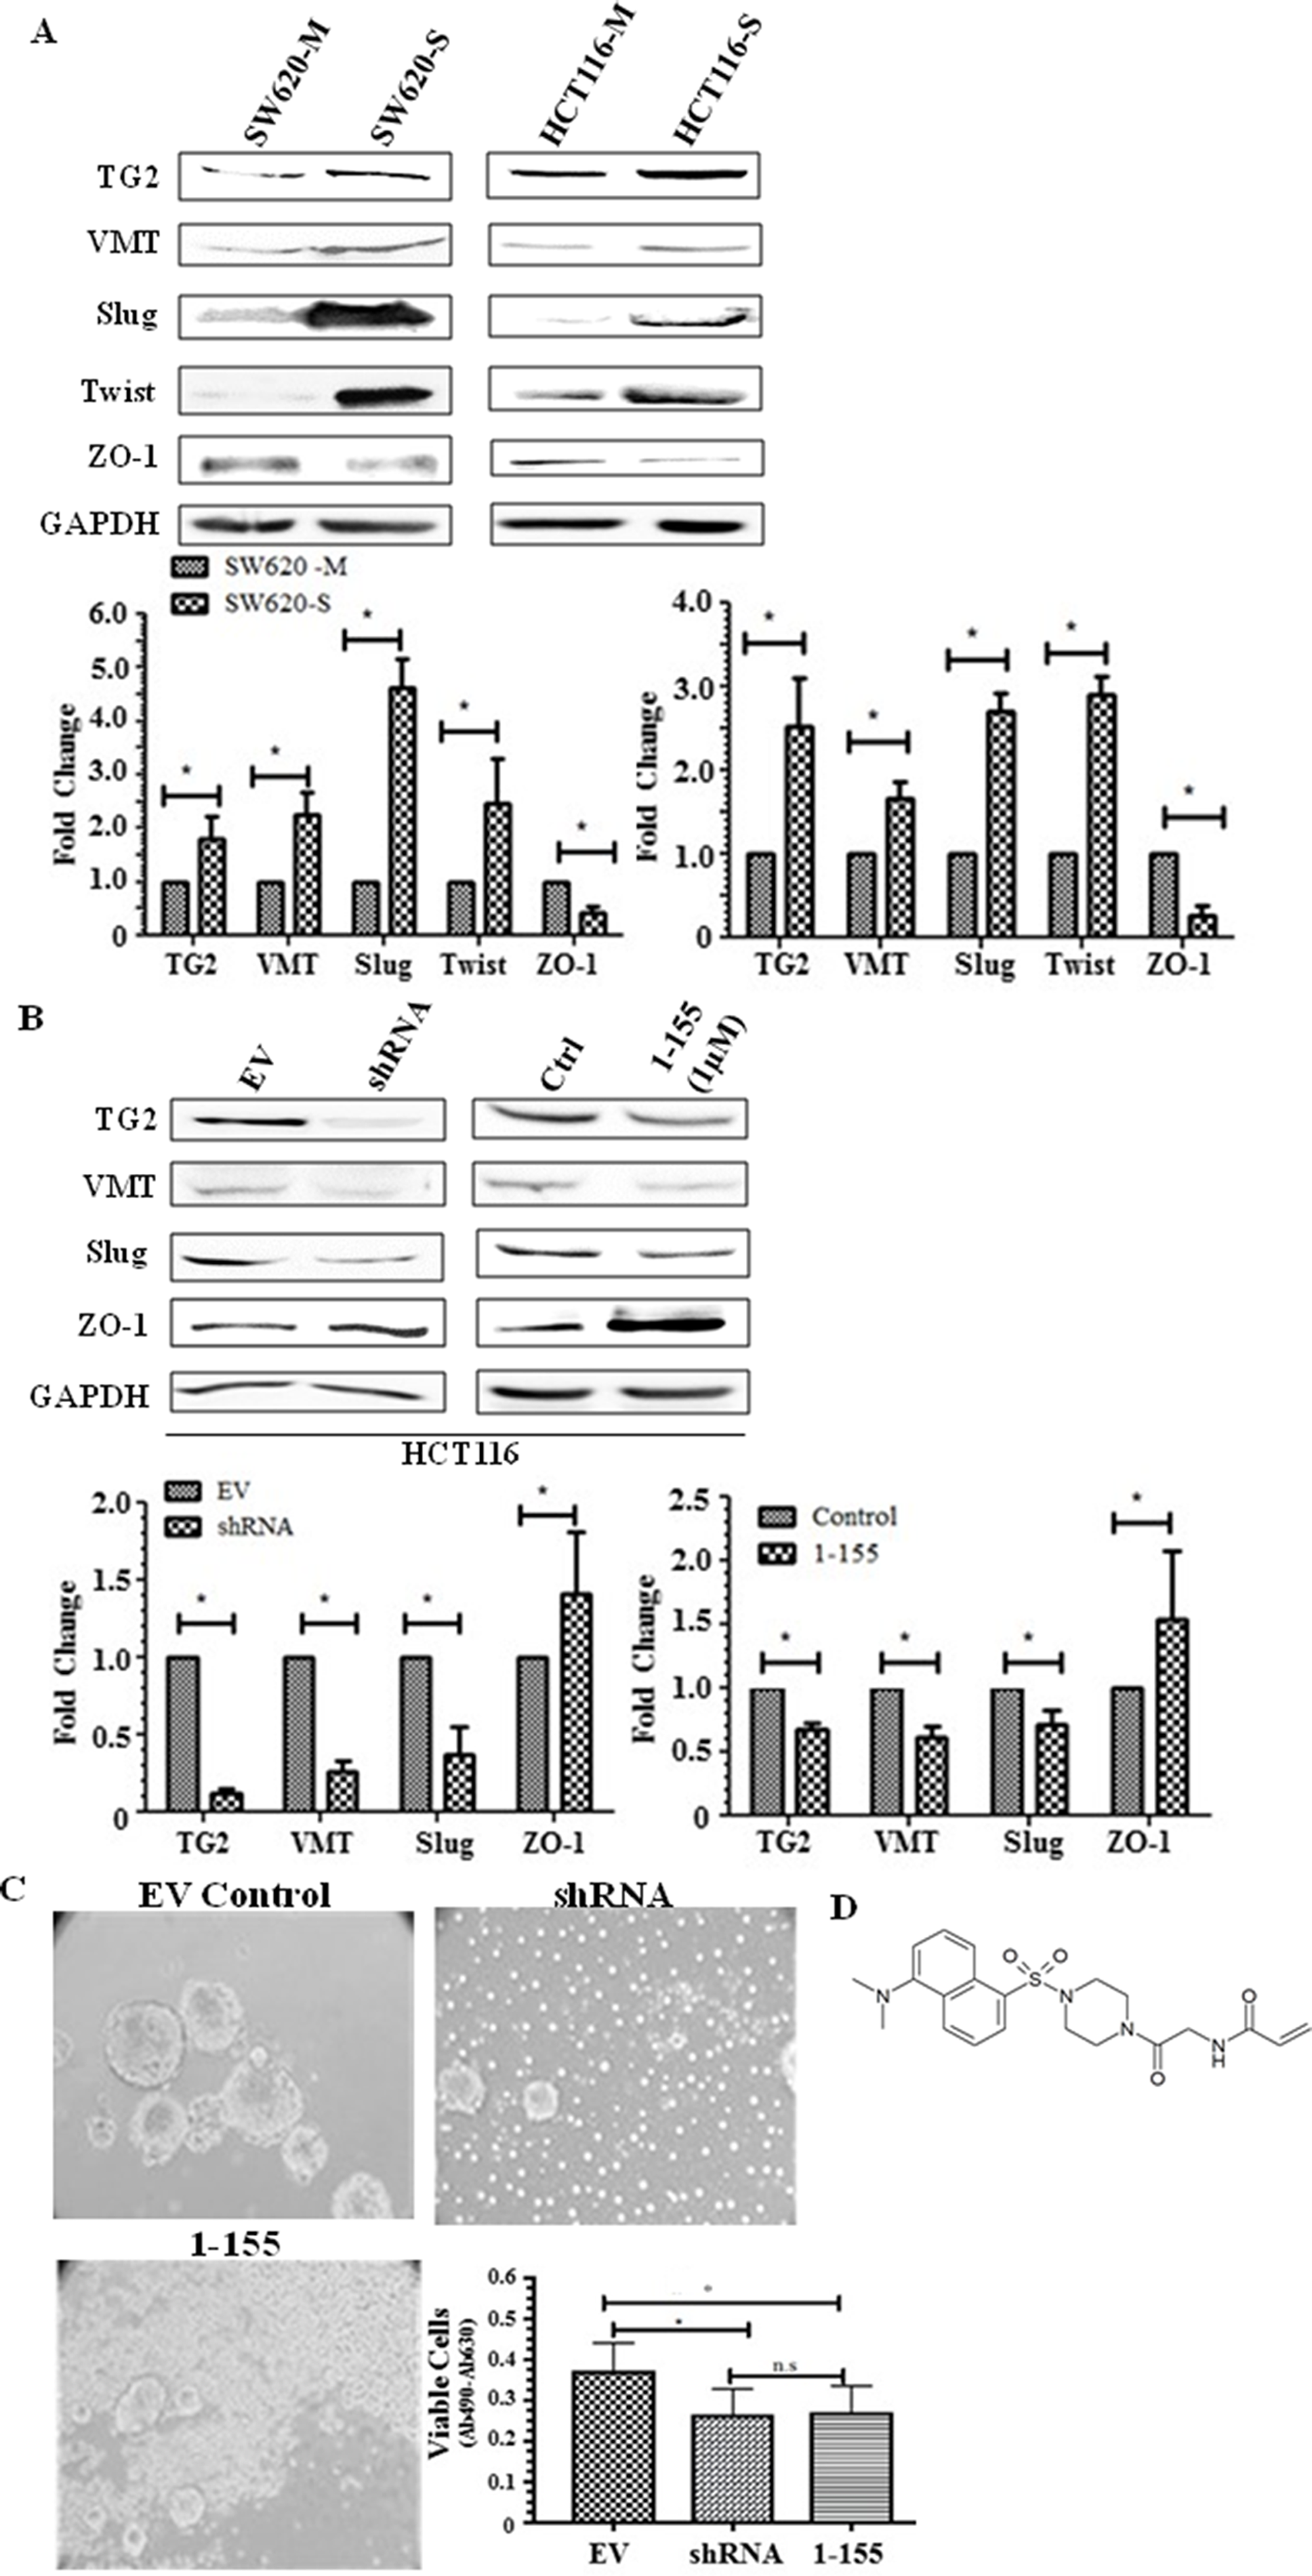 TG2 and EMT is upregulated in spheroid cells with stem cell-like properties.